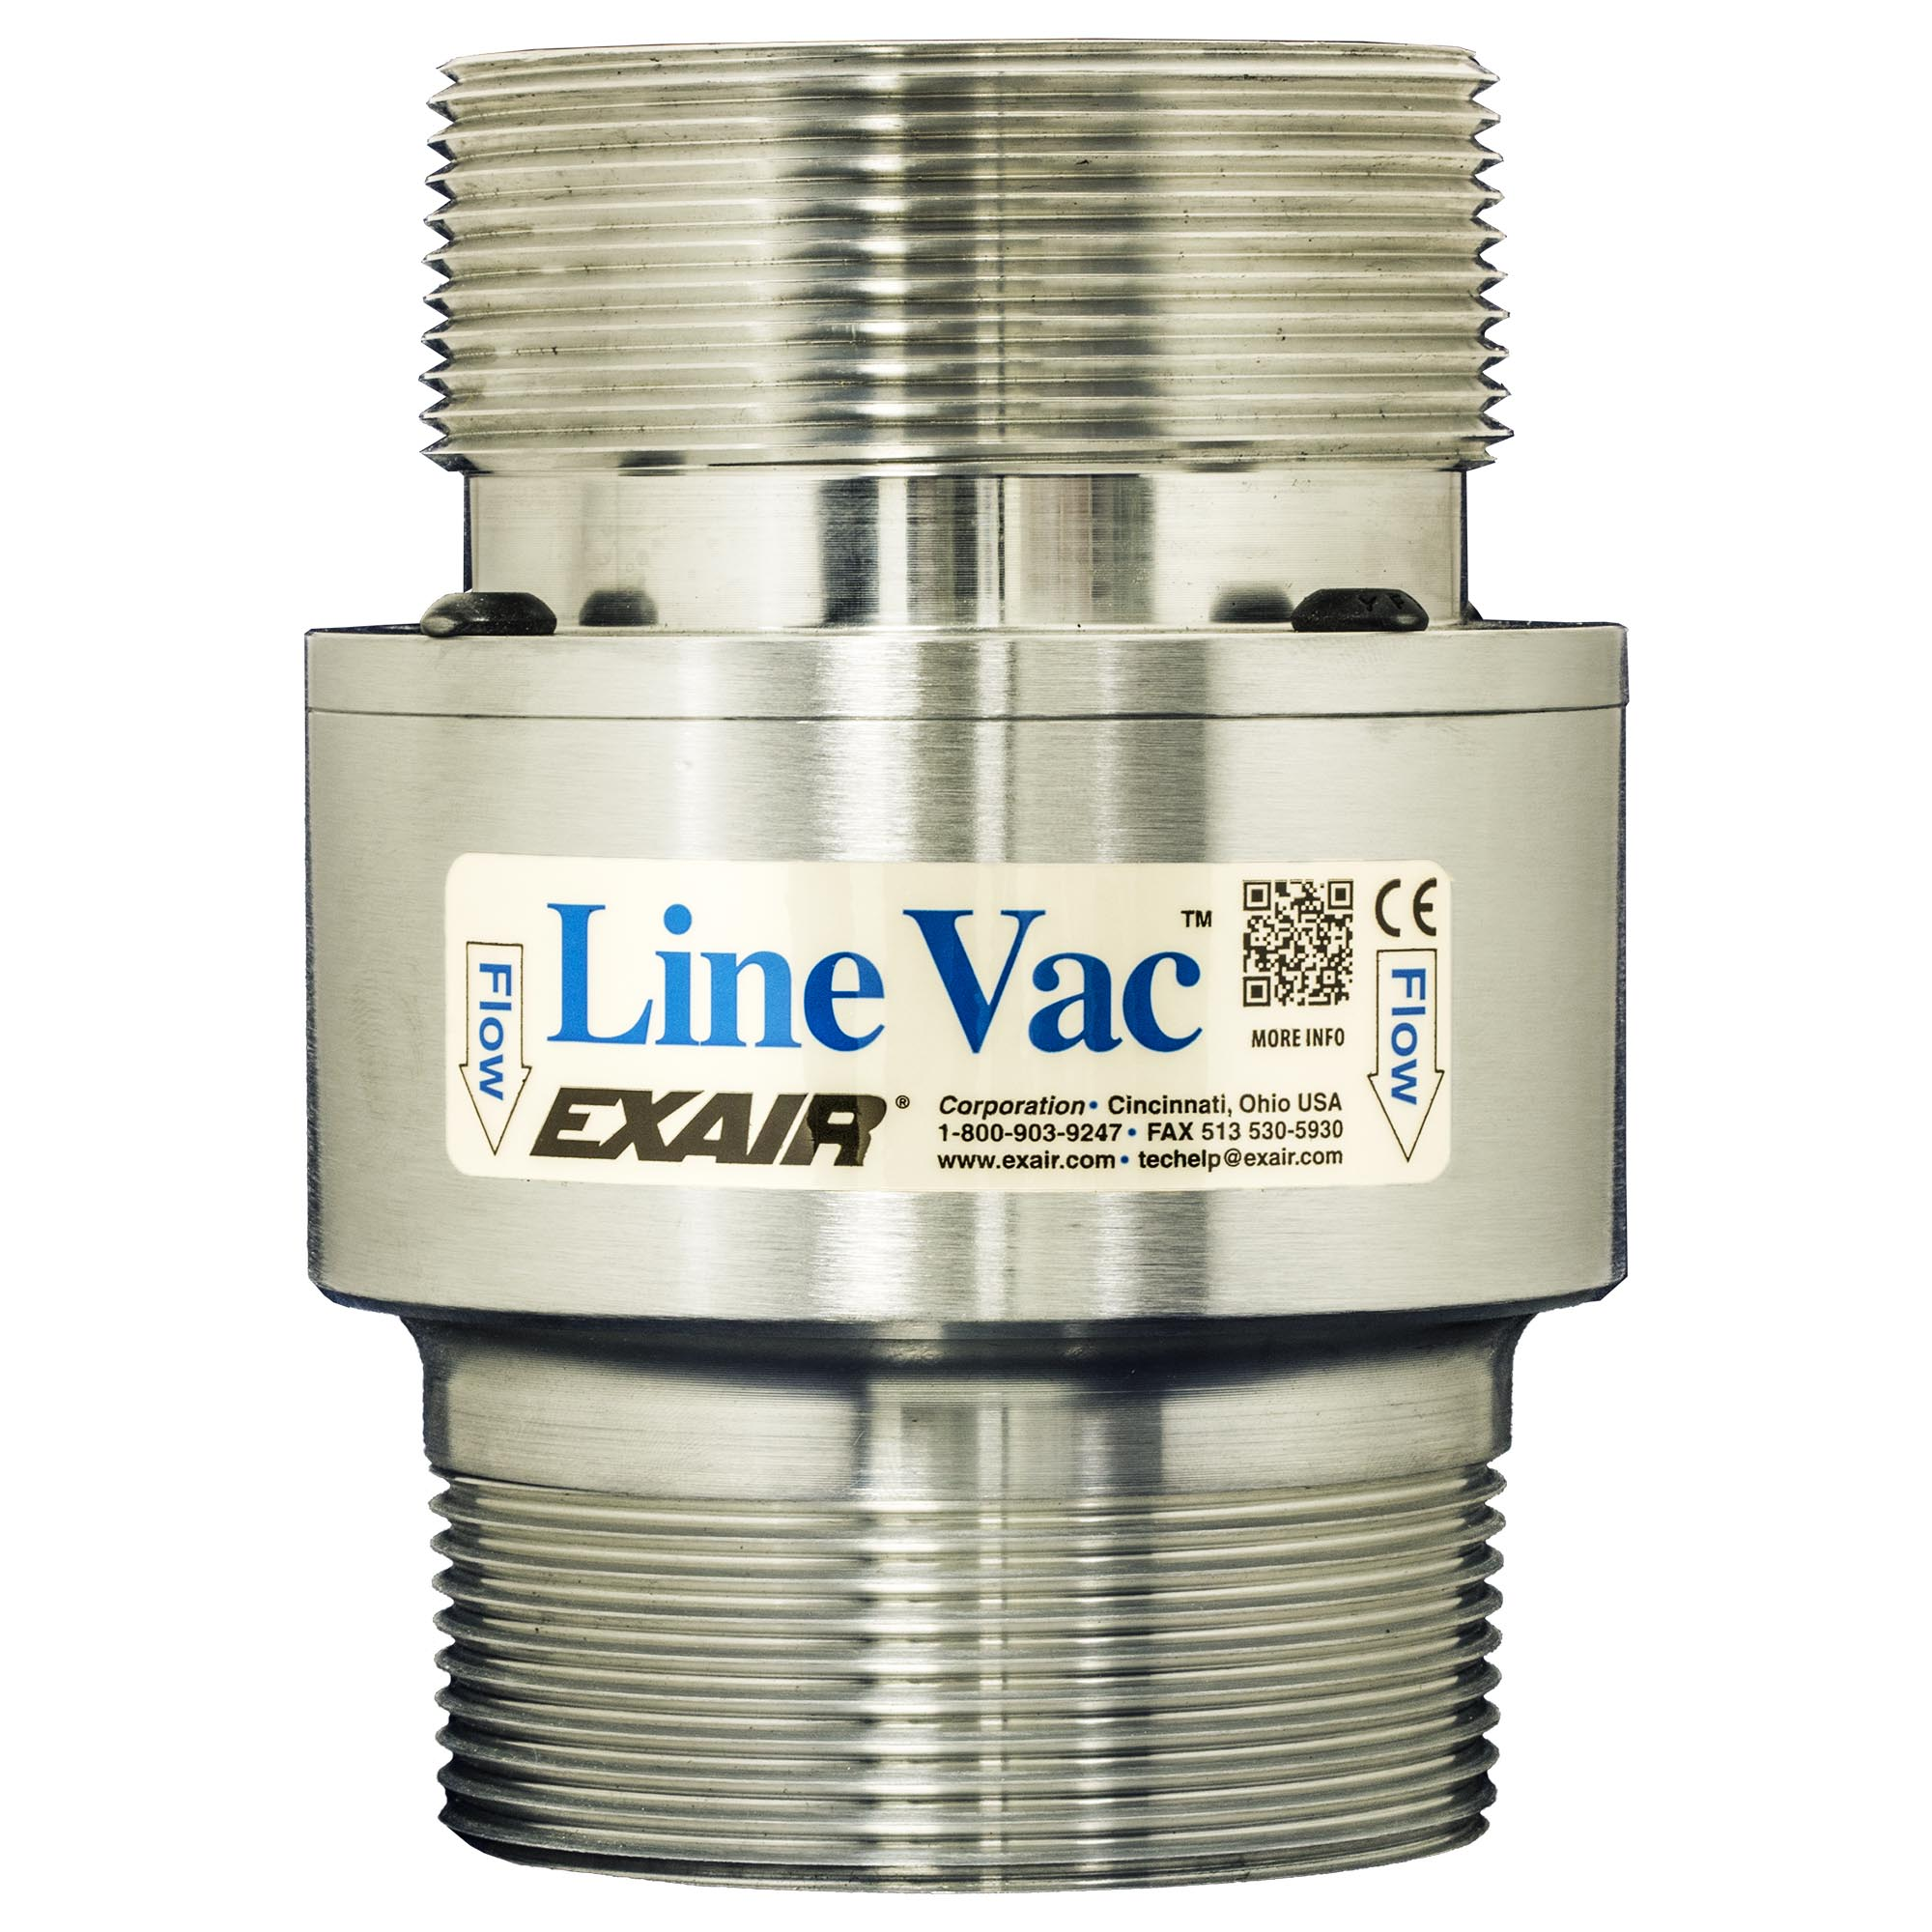 Model 140300 3 NPT Alum. Threaded Line Vac